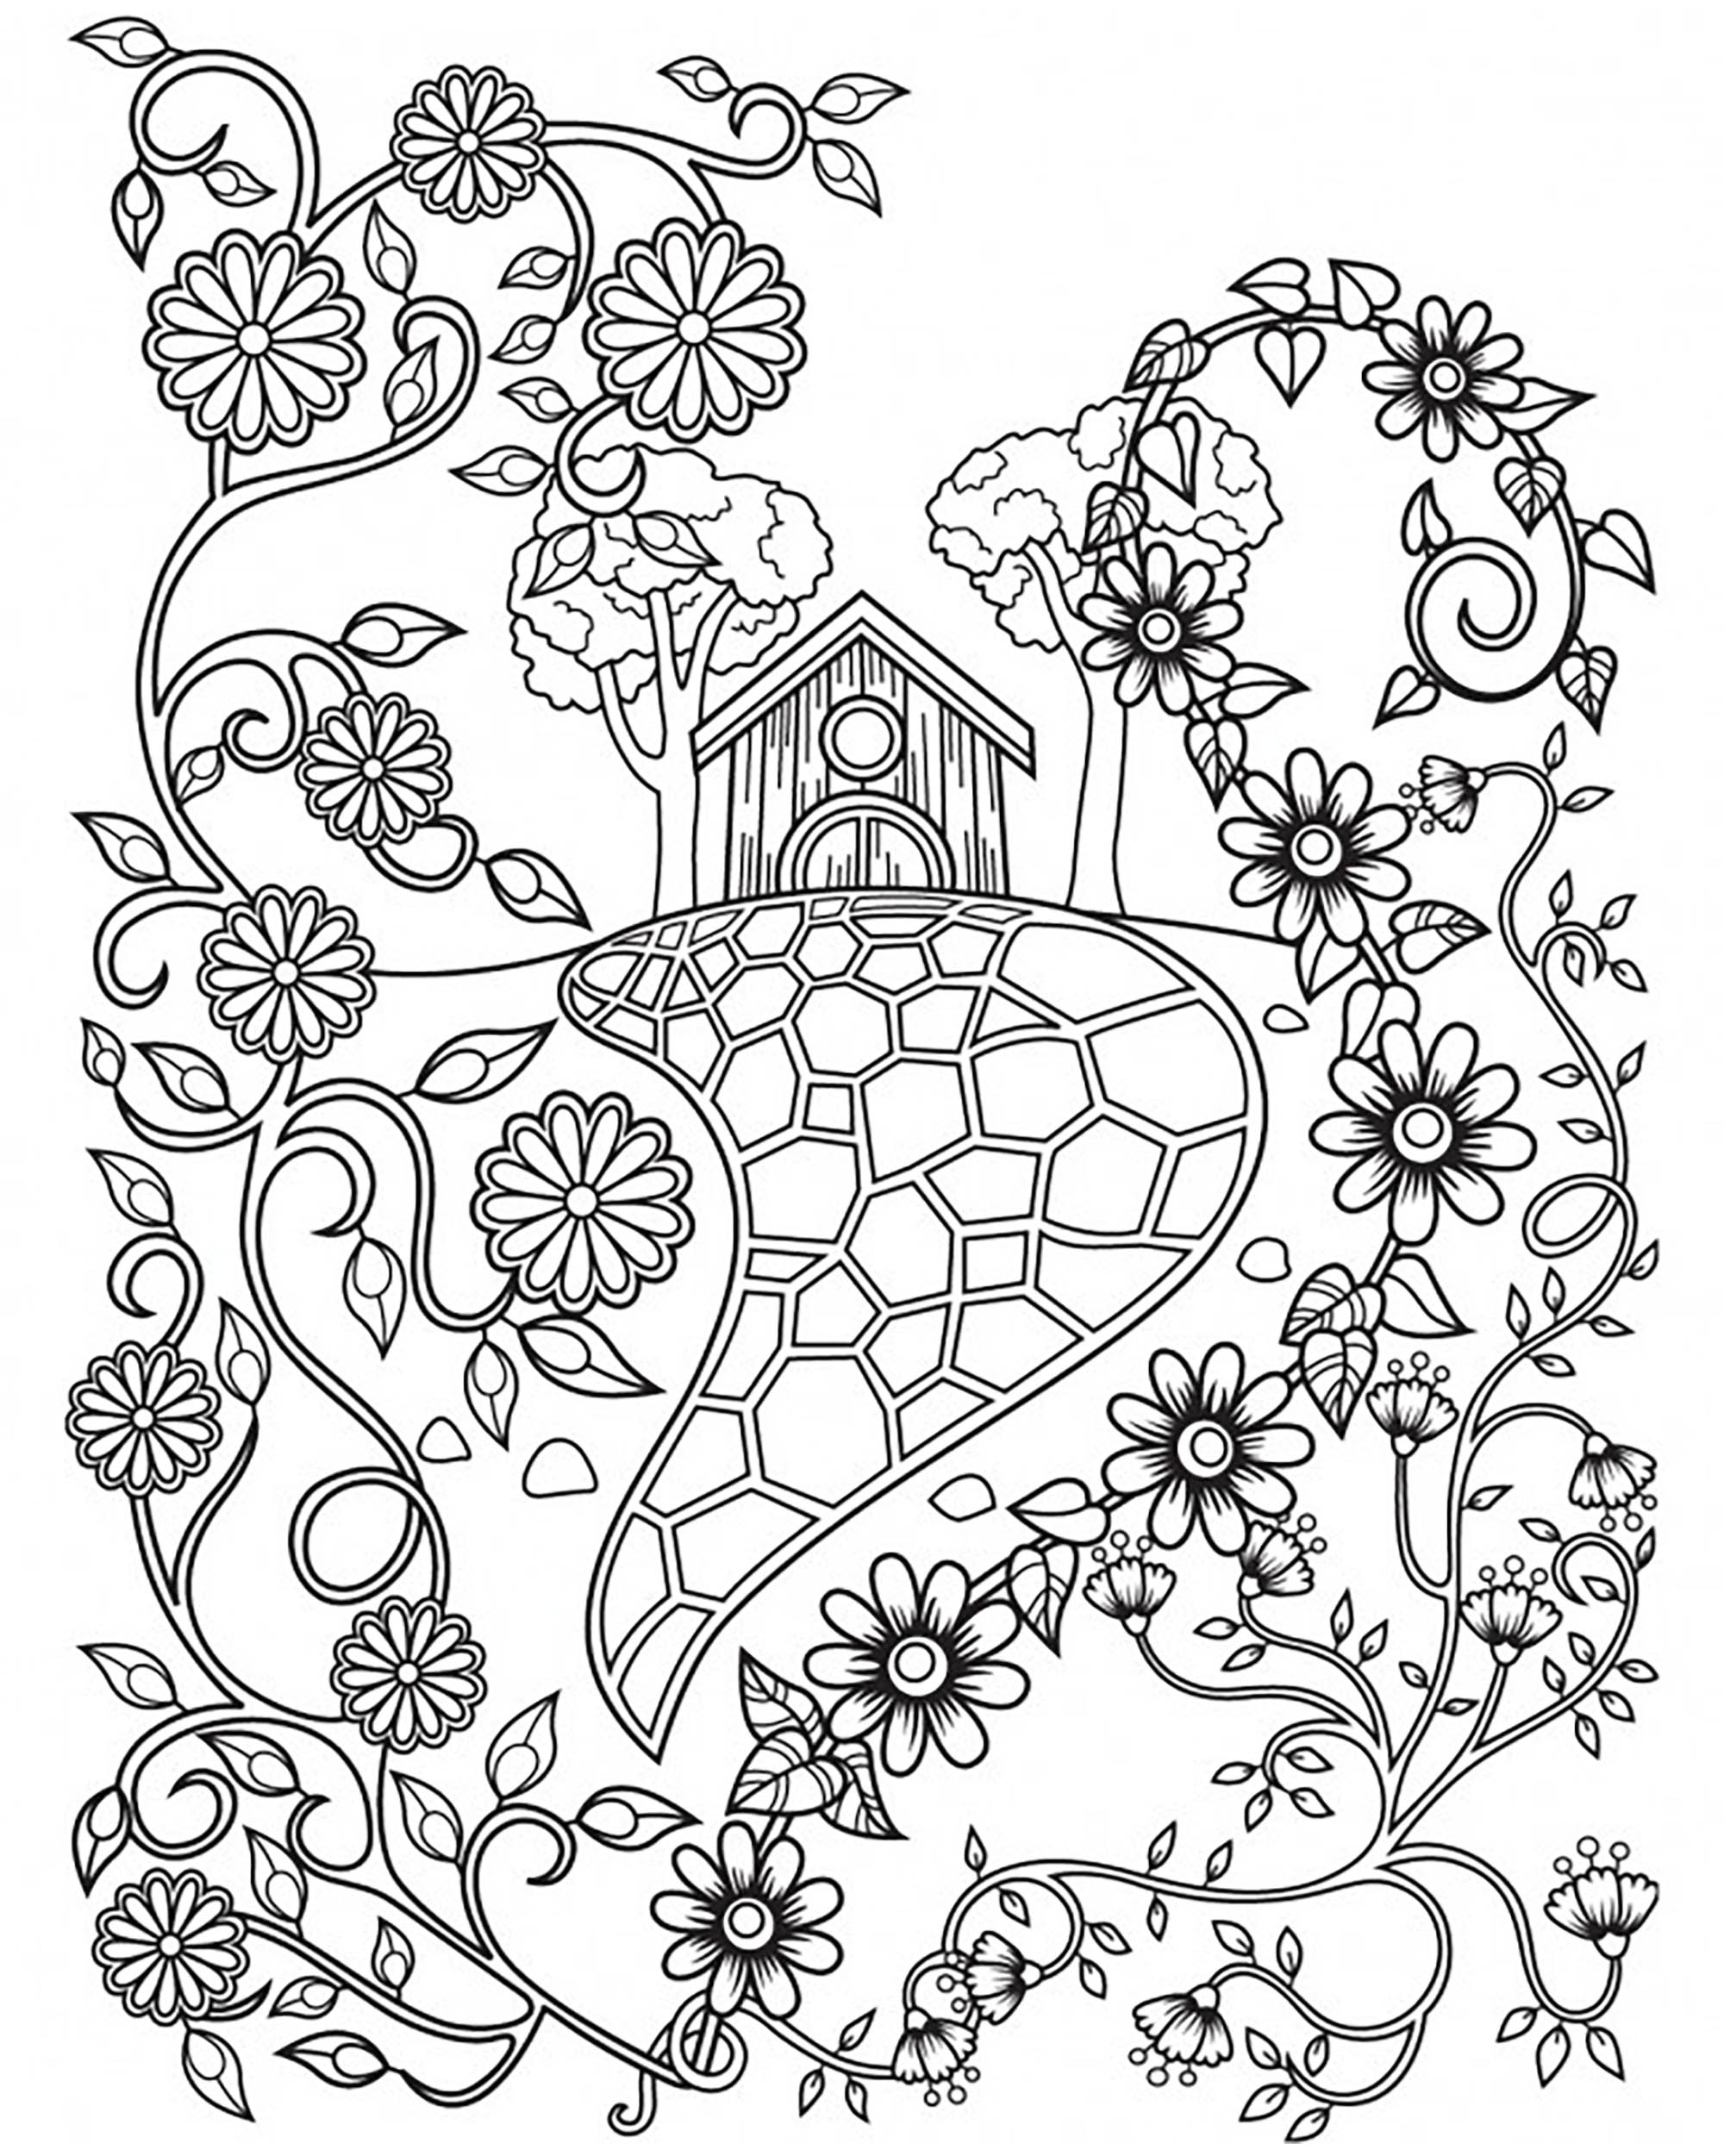 Fairy tales - Coloring pages for adults | JustColor